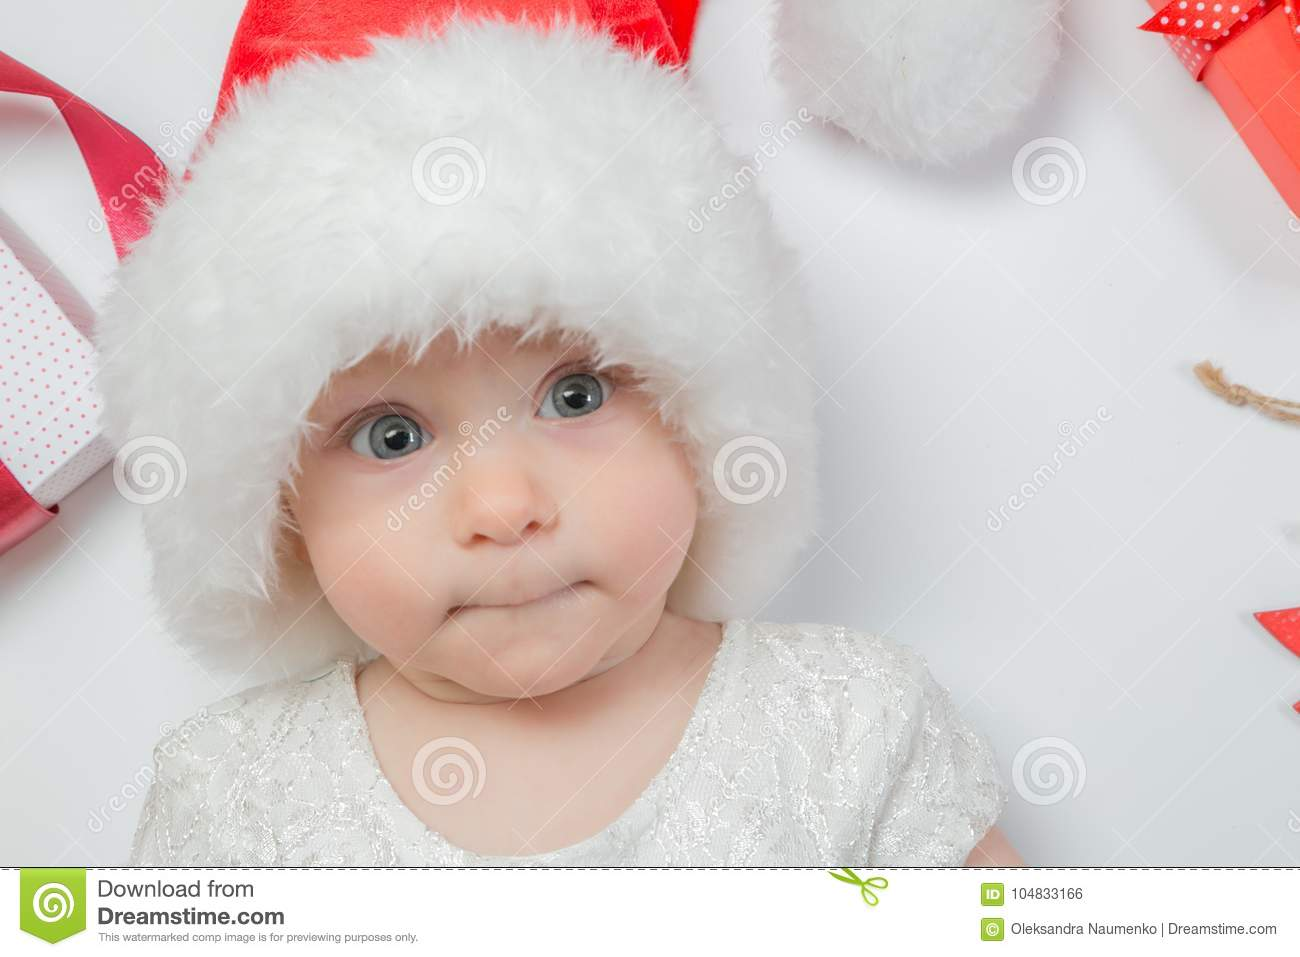 bd866d293ee5 Baby lying with presents in santa hat on white background, top view.  Christmas concept